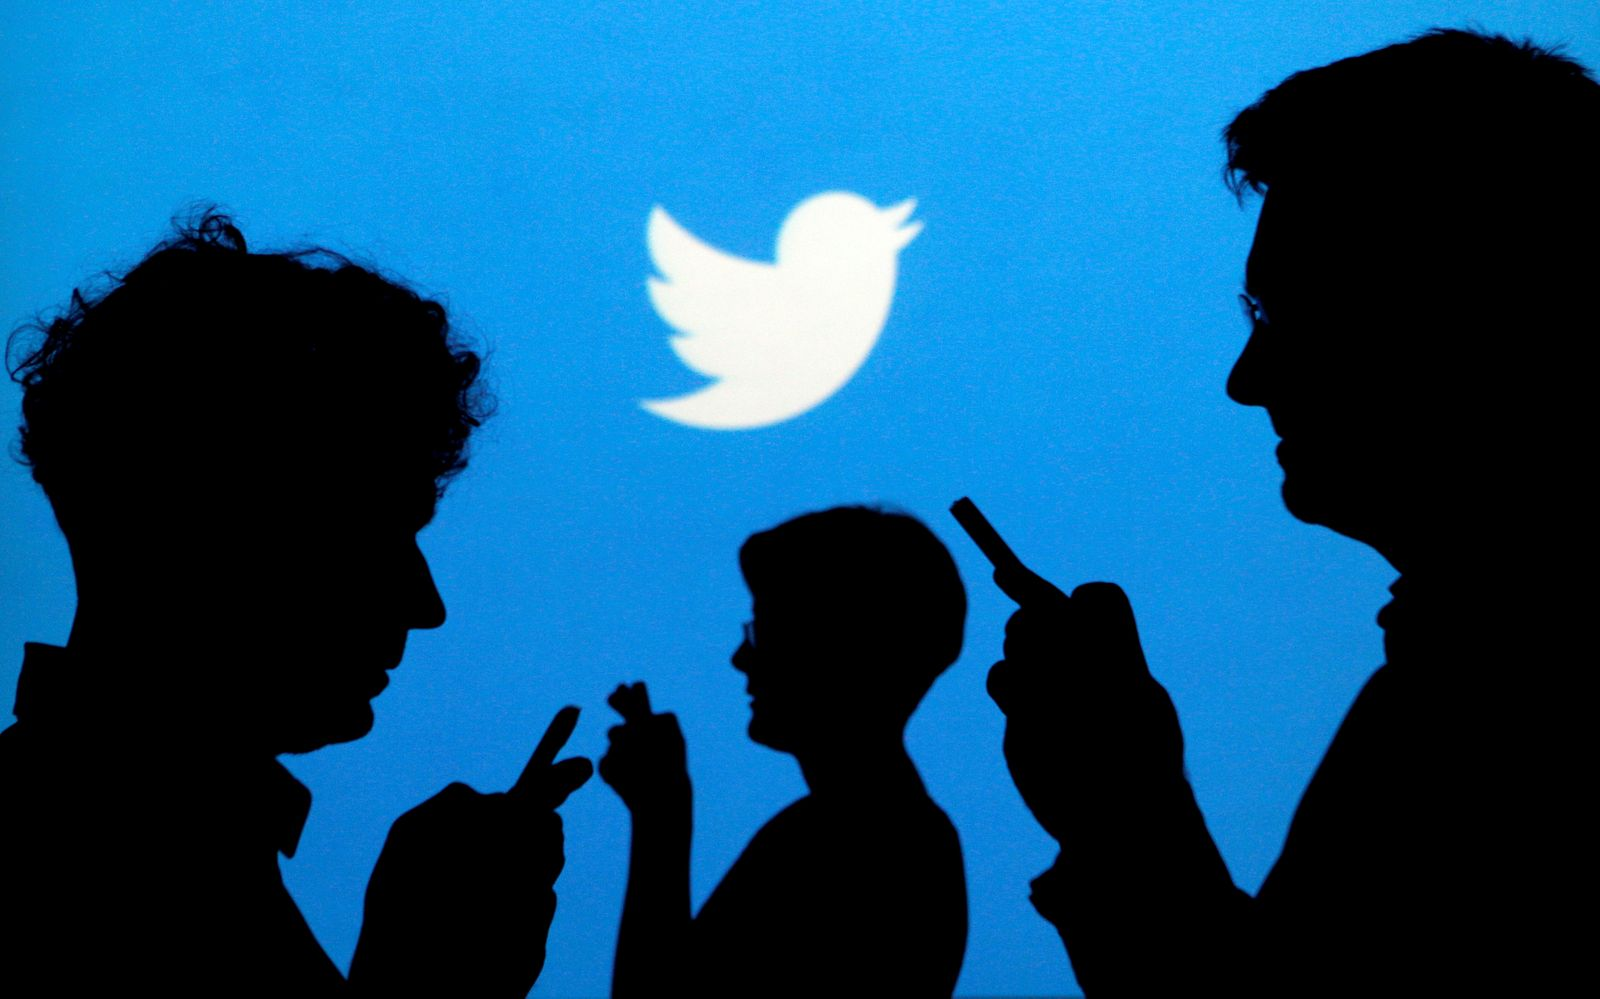 FILE PHOTO: Smartphone users are silhouetted against a backdrop projected with the Twitter logo